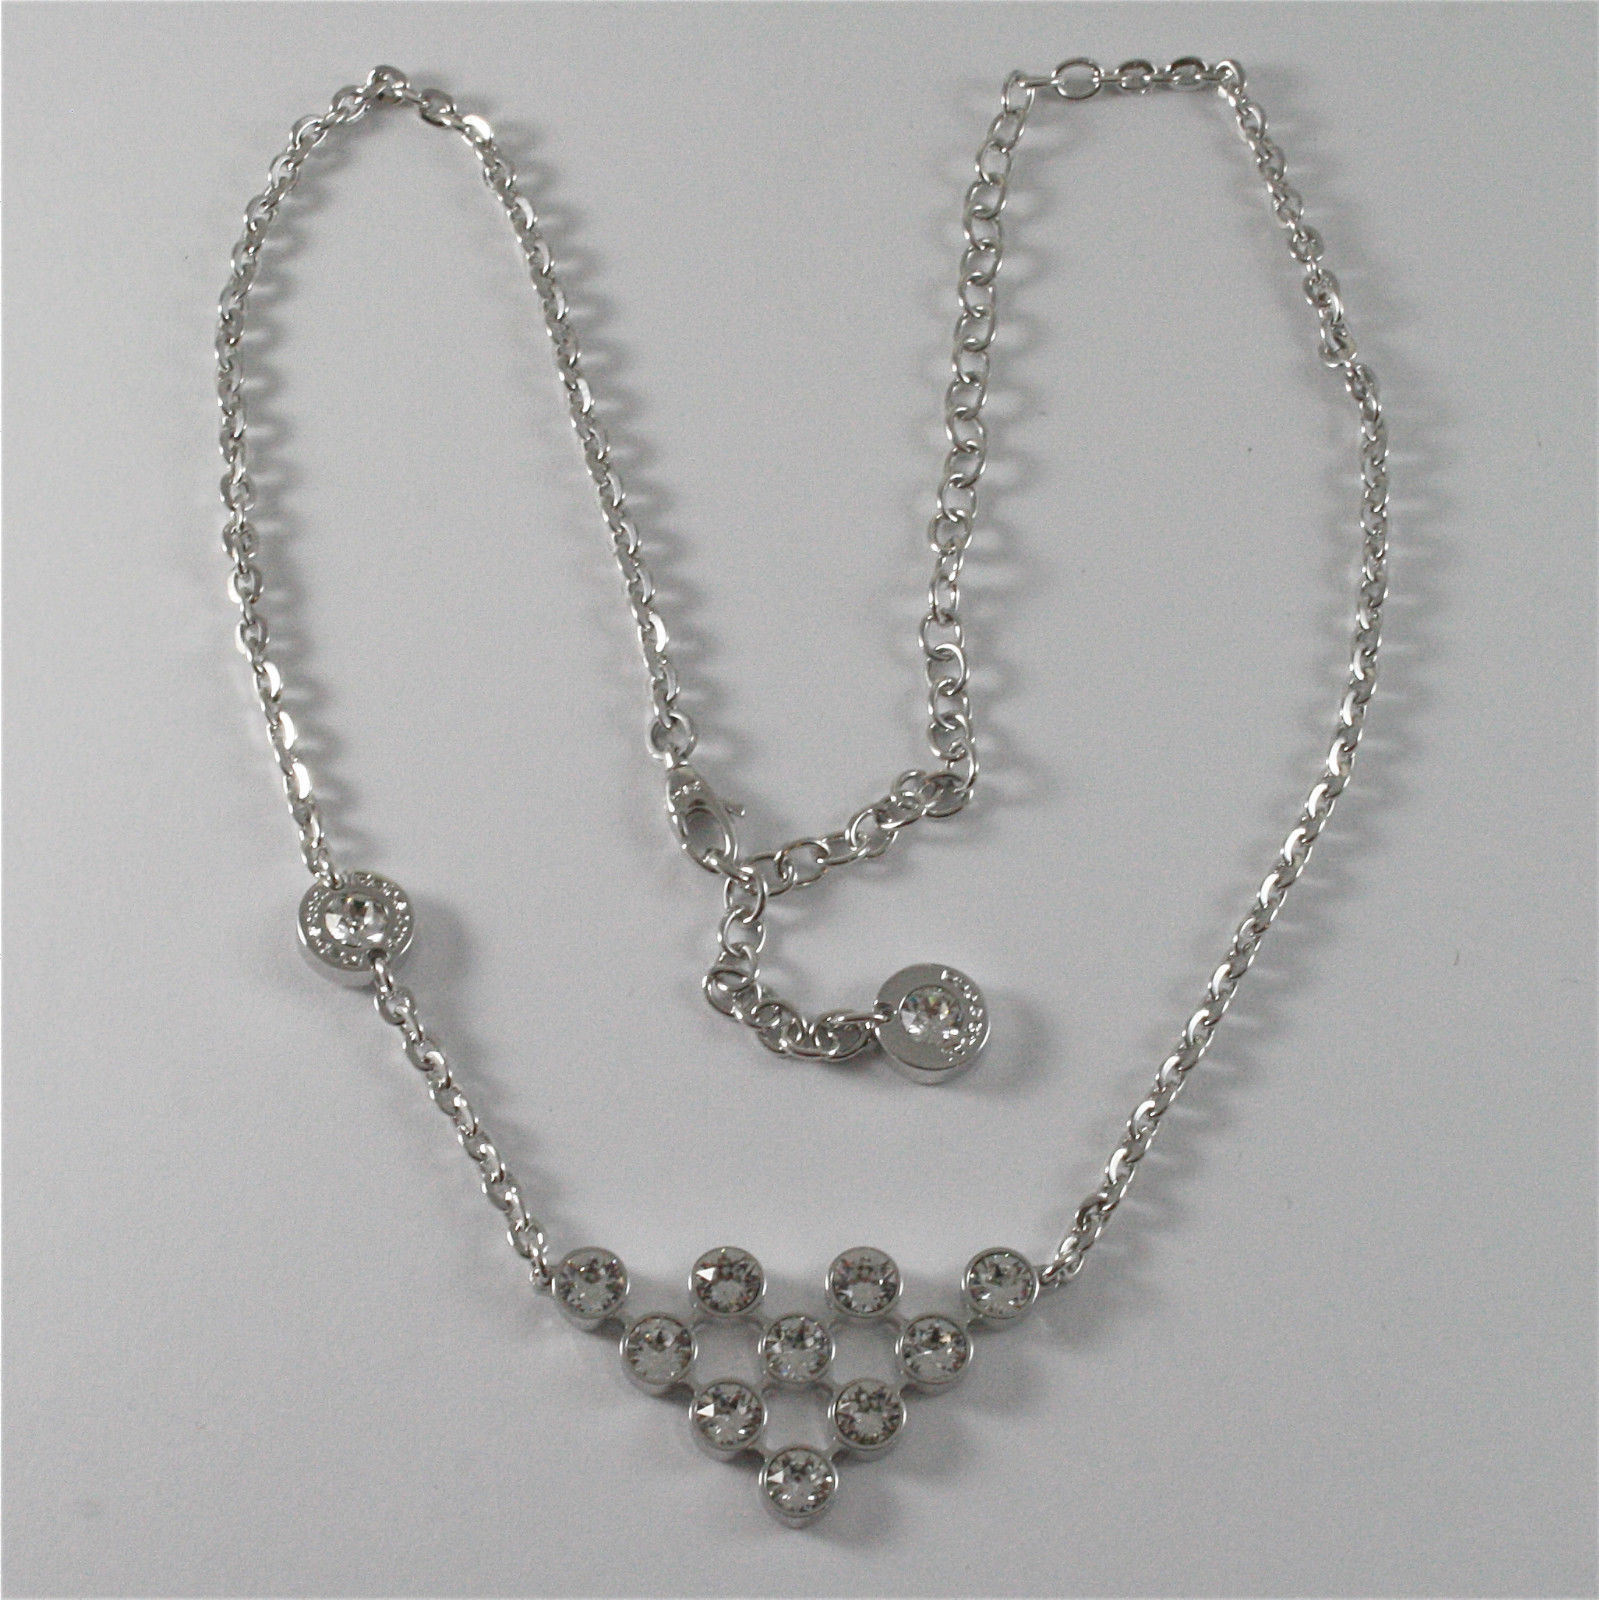 WHITE GOLD PLATED BRONZE REBECCA CLUSTER NECKLACE BPBKBB05 MADE IN ITALY 18.90